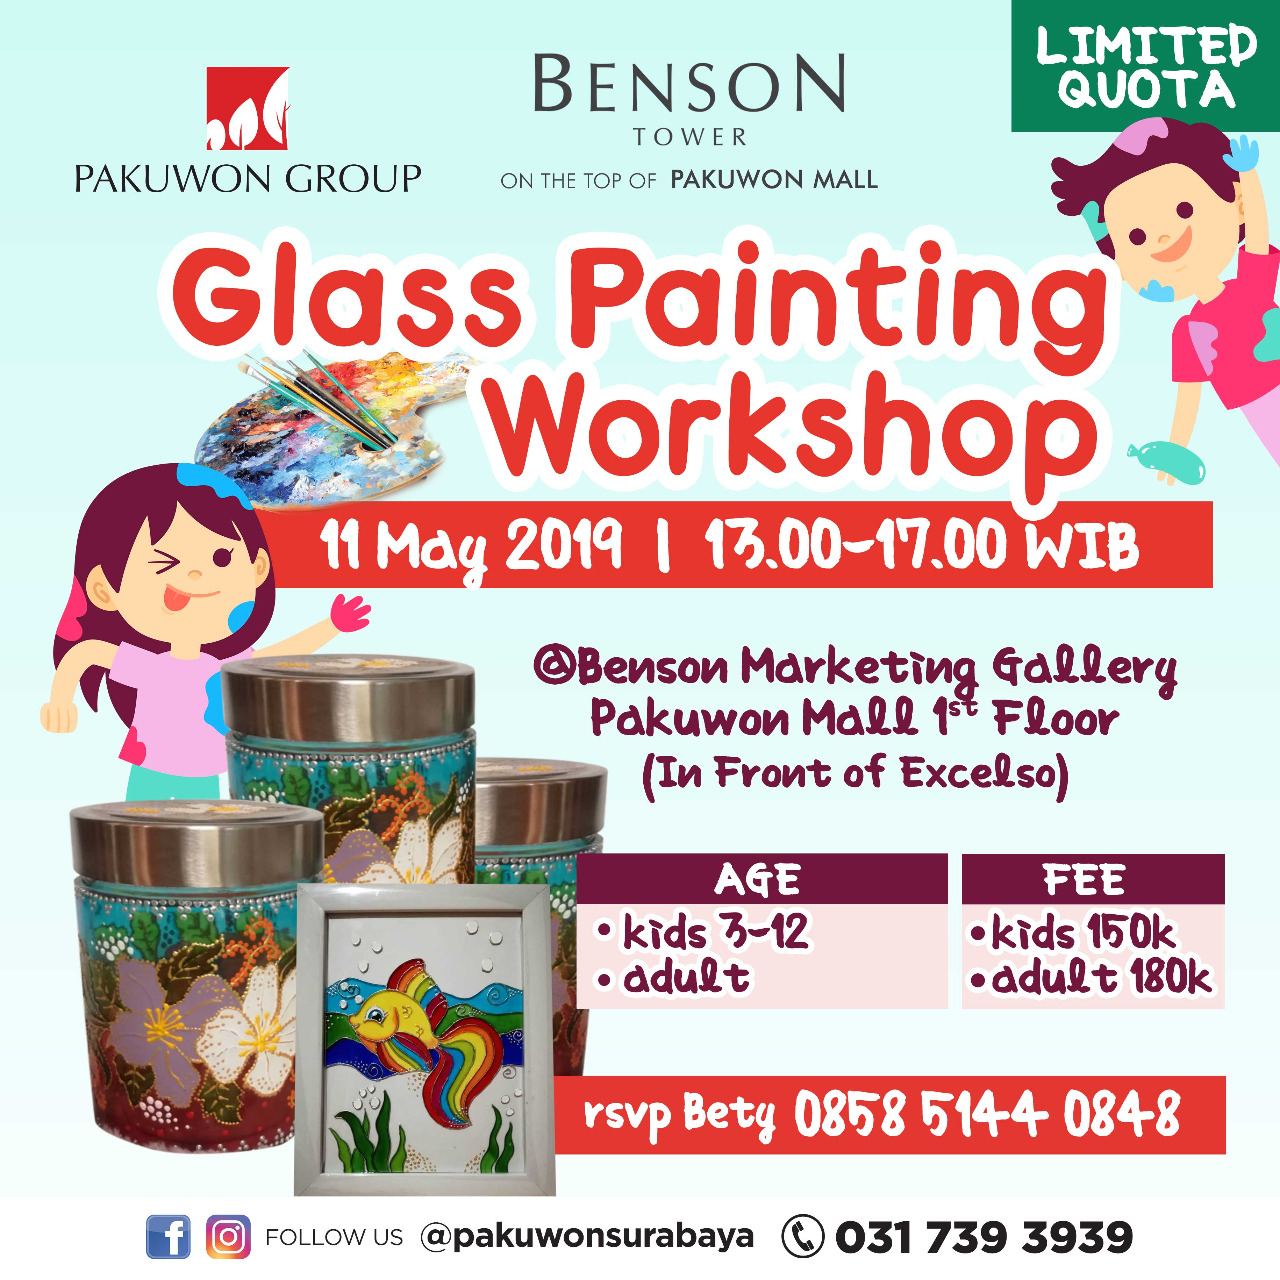 Glass Painting Workshop at Benson Tower